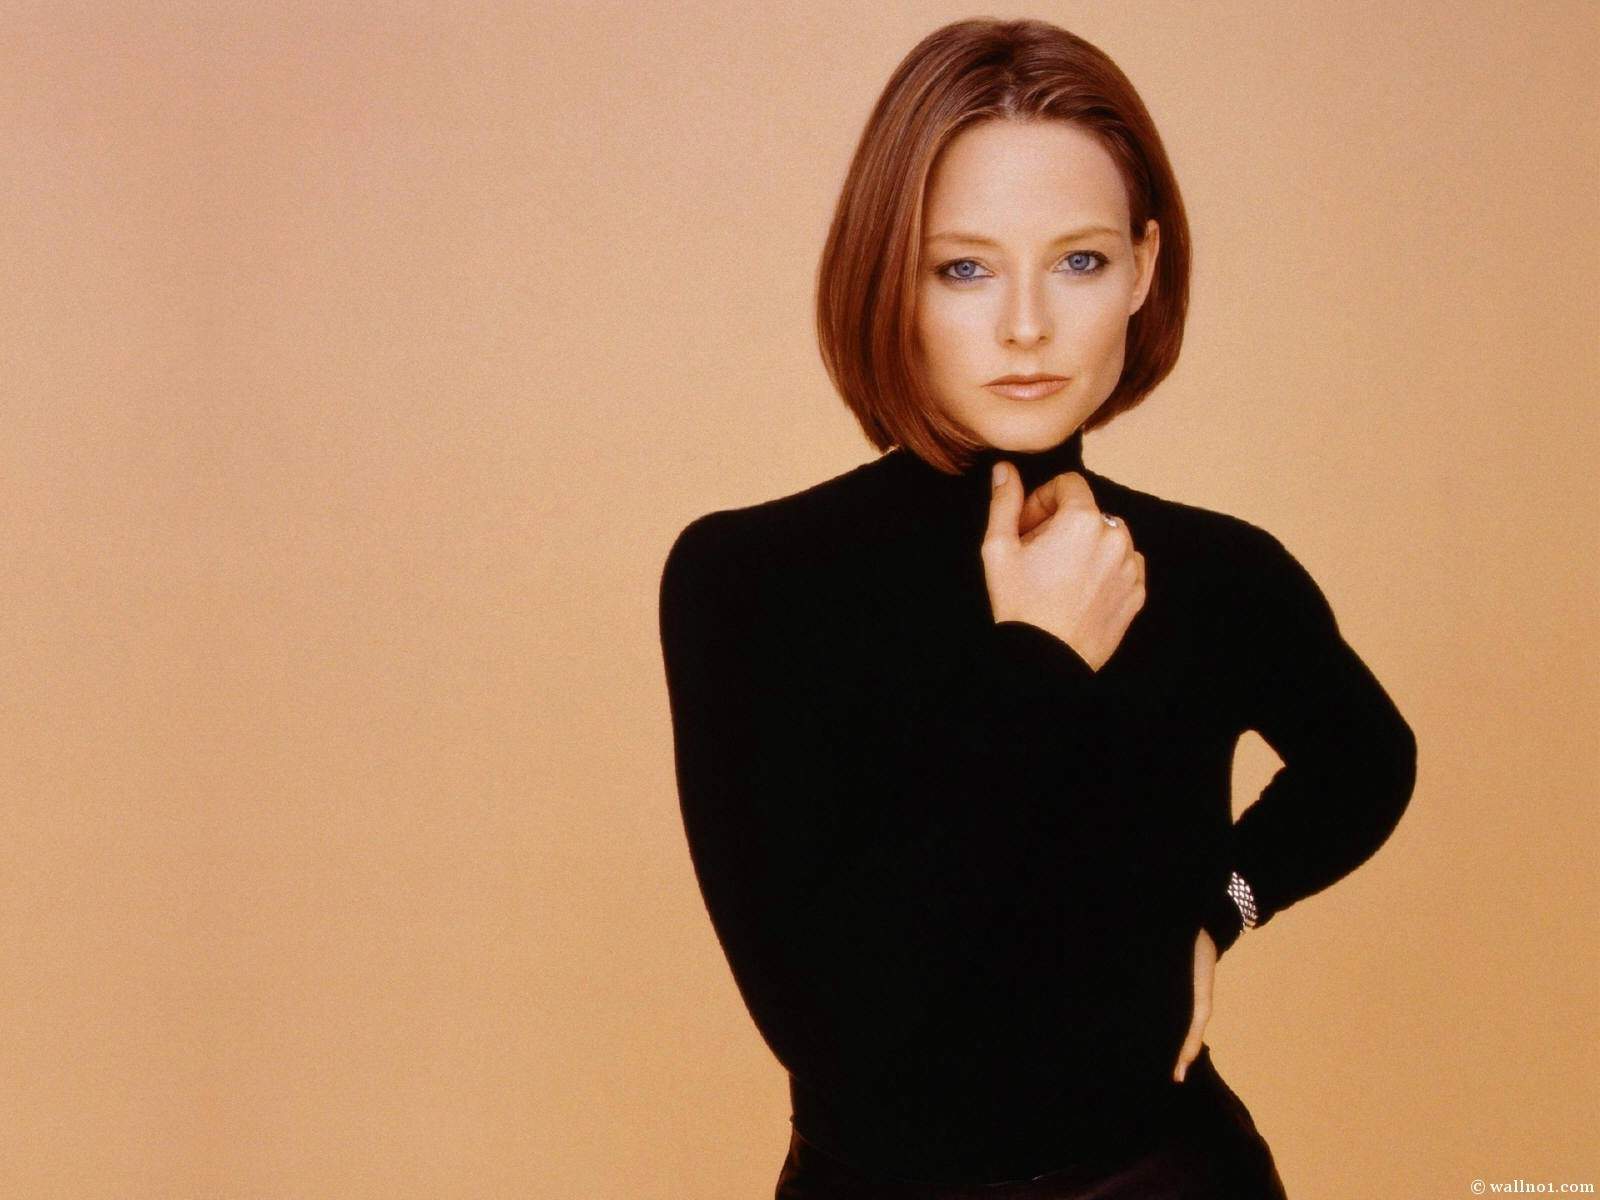 Jodie Jodie Foster Wallpaper 18384108 Fanpop